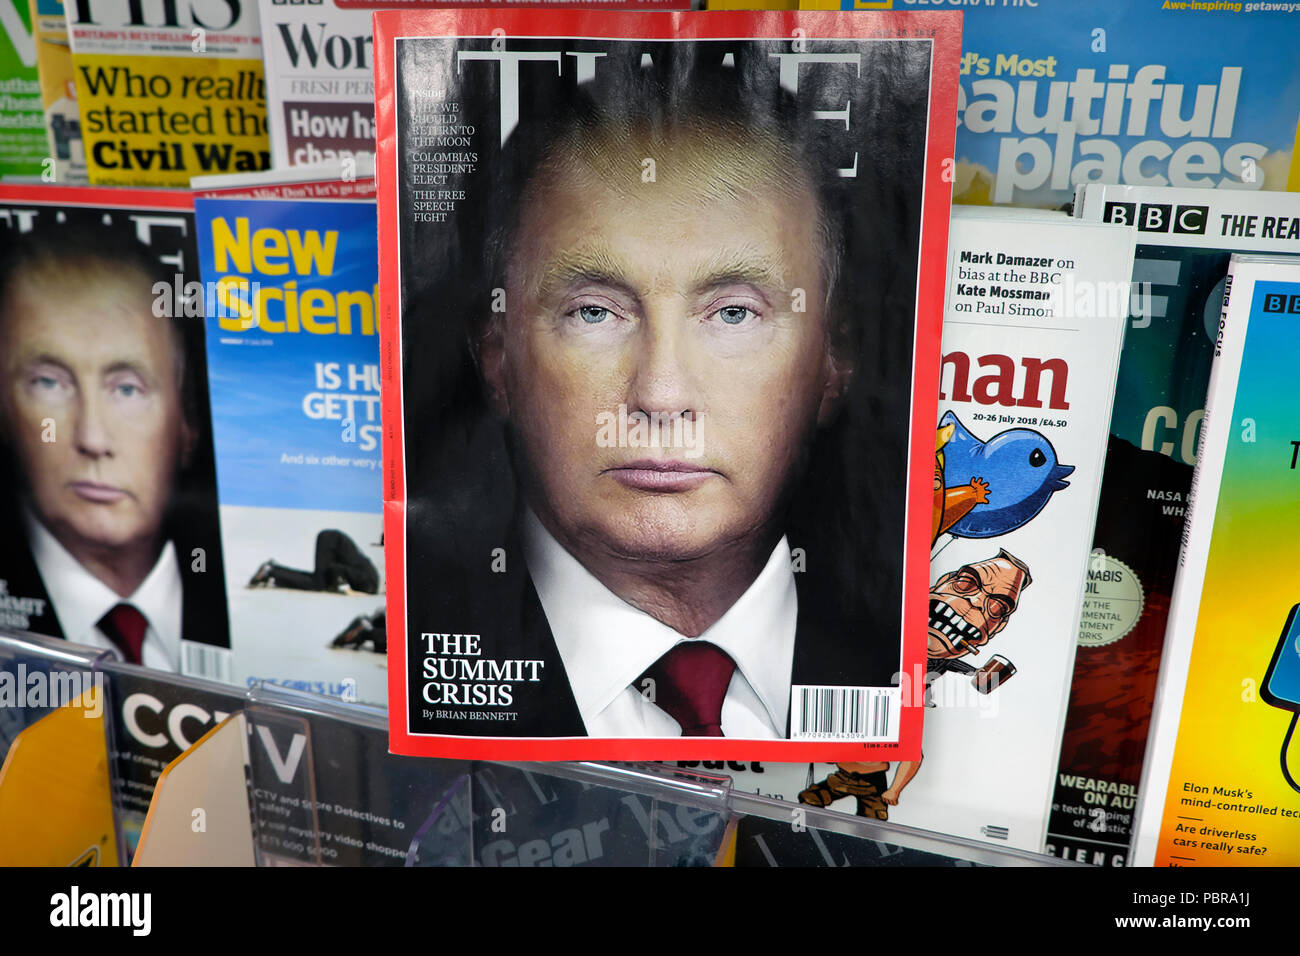 Time magazine cover July 2018 Vladimir Putin and Donald Trump portrait blend with other magazines on newsagent shelf WH Smith London UK  KATHY DEWITT - Stock Image